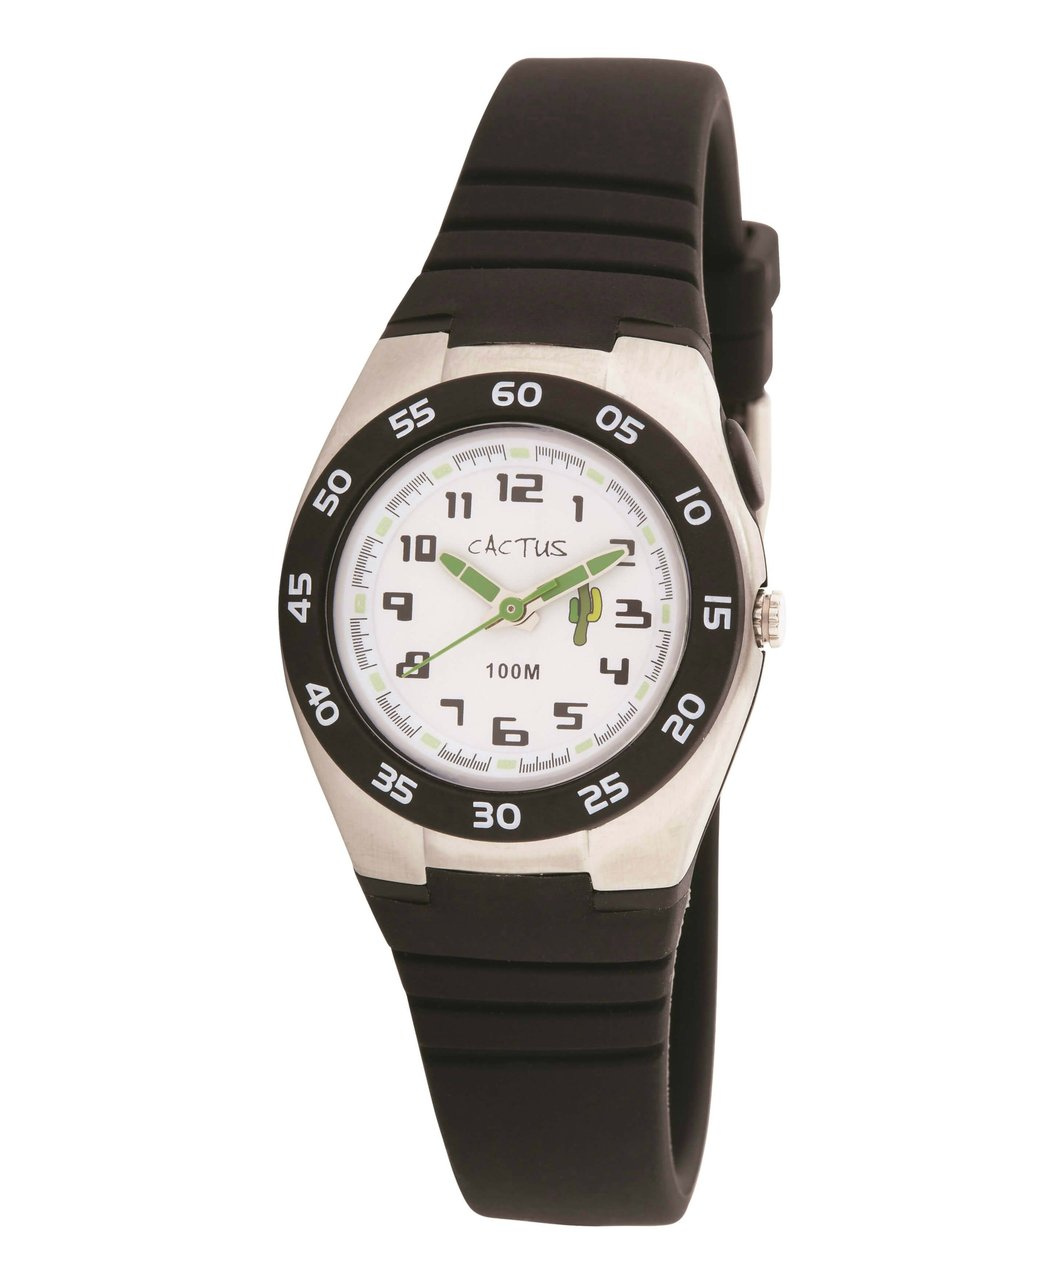 CACTUS Watches - Summer Glide - Waterproof Kids Watch - Black - CAC-75-M01